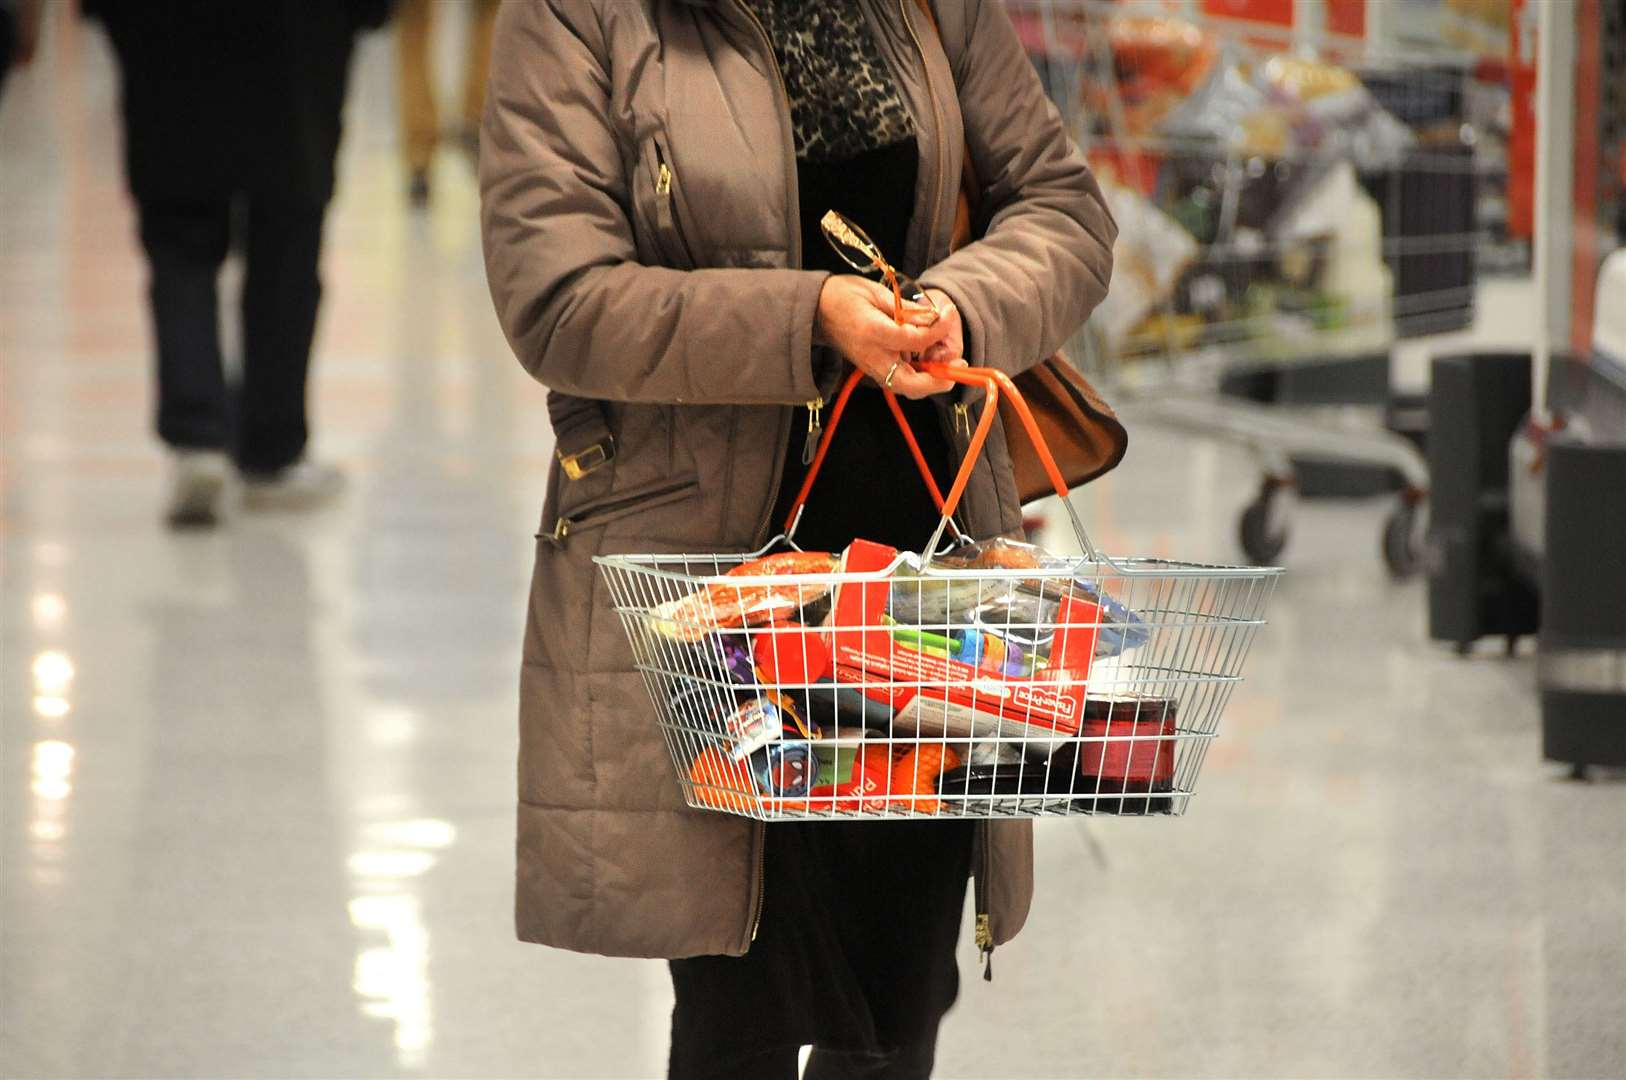 Shoppers have only been able to pay for items with cash